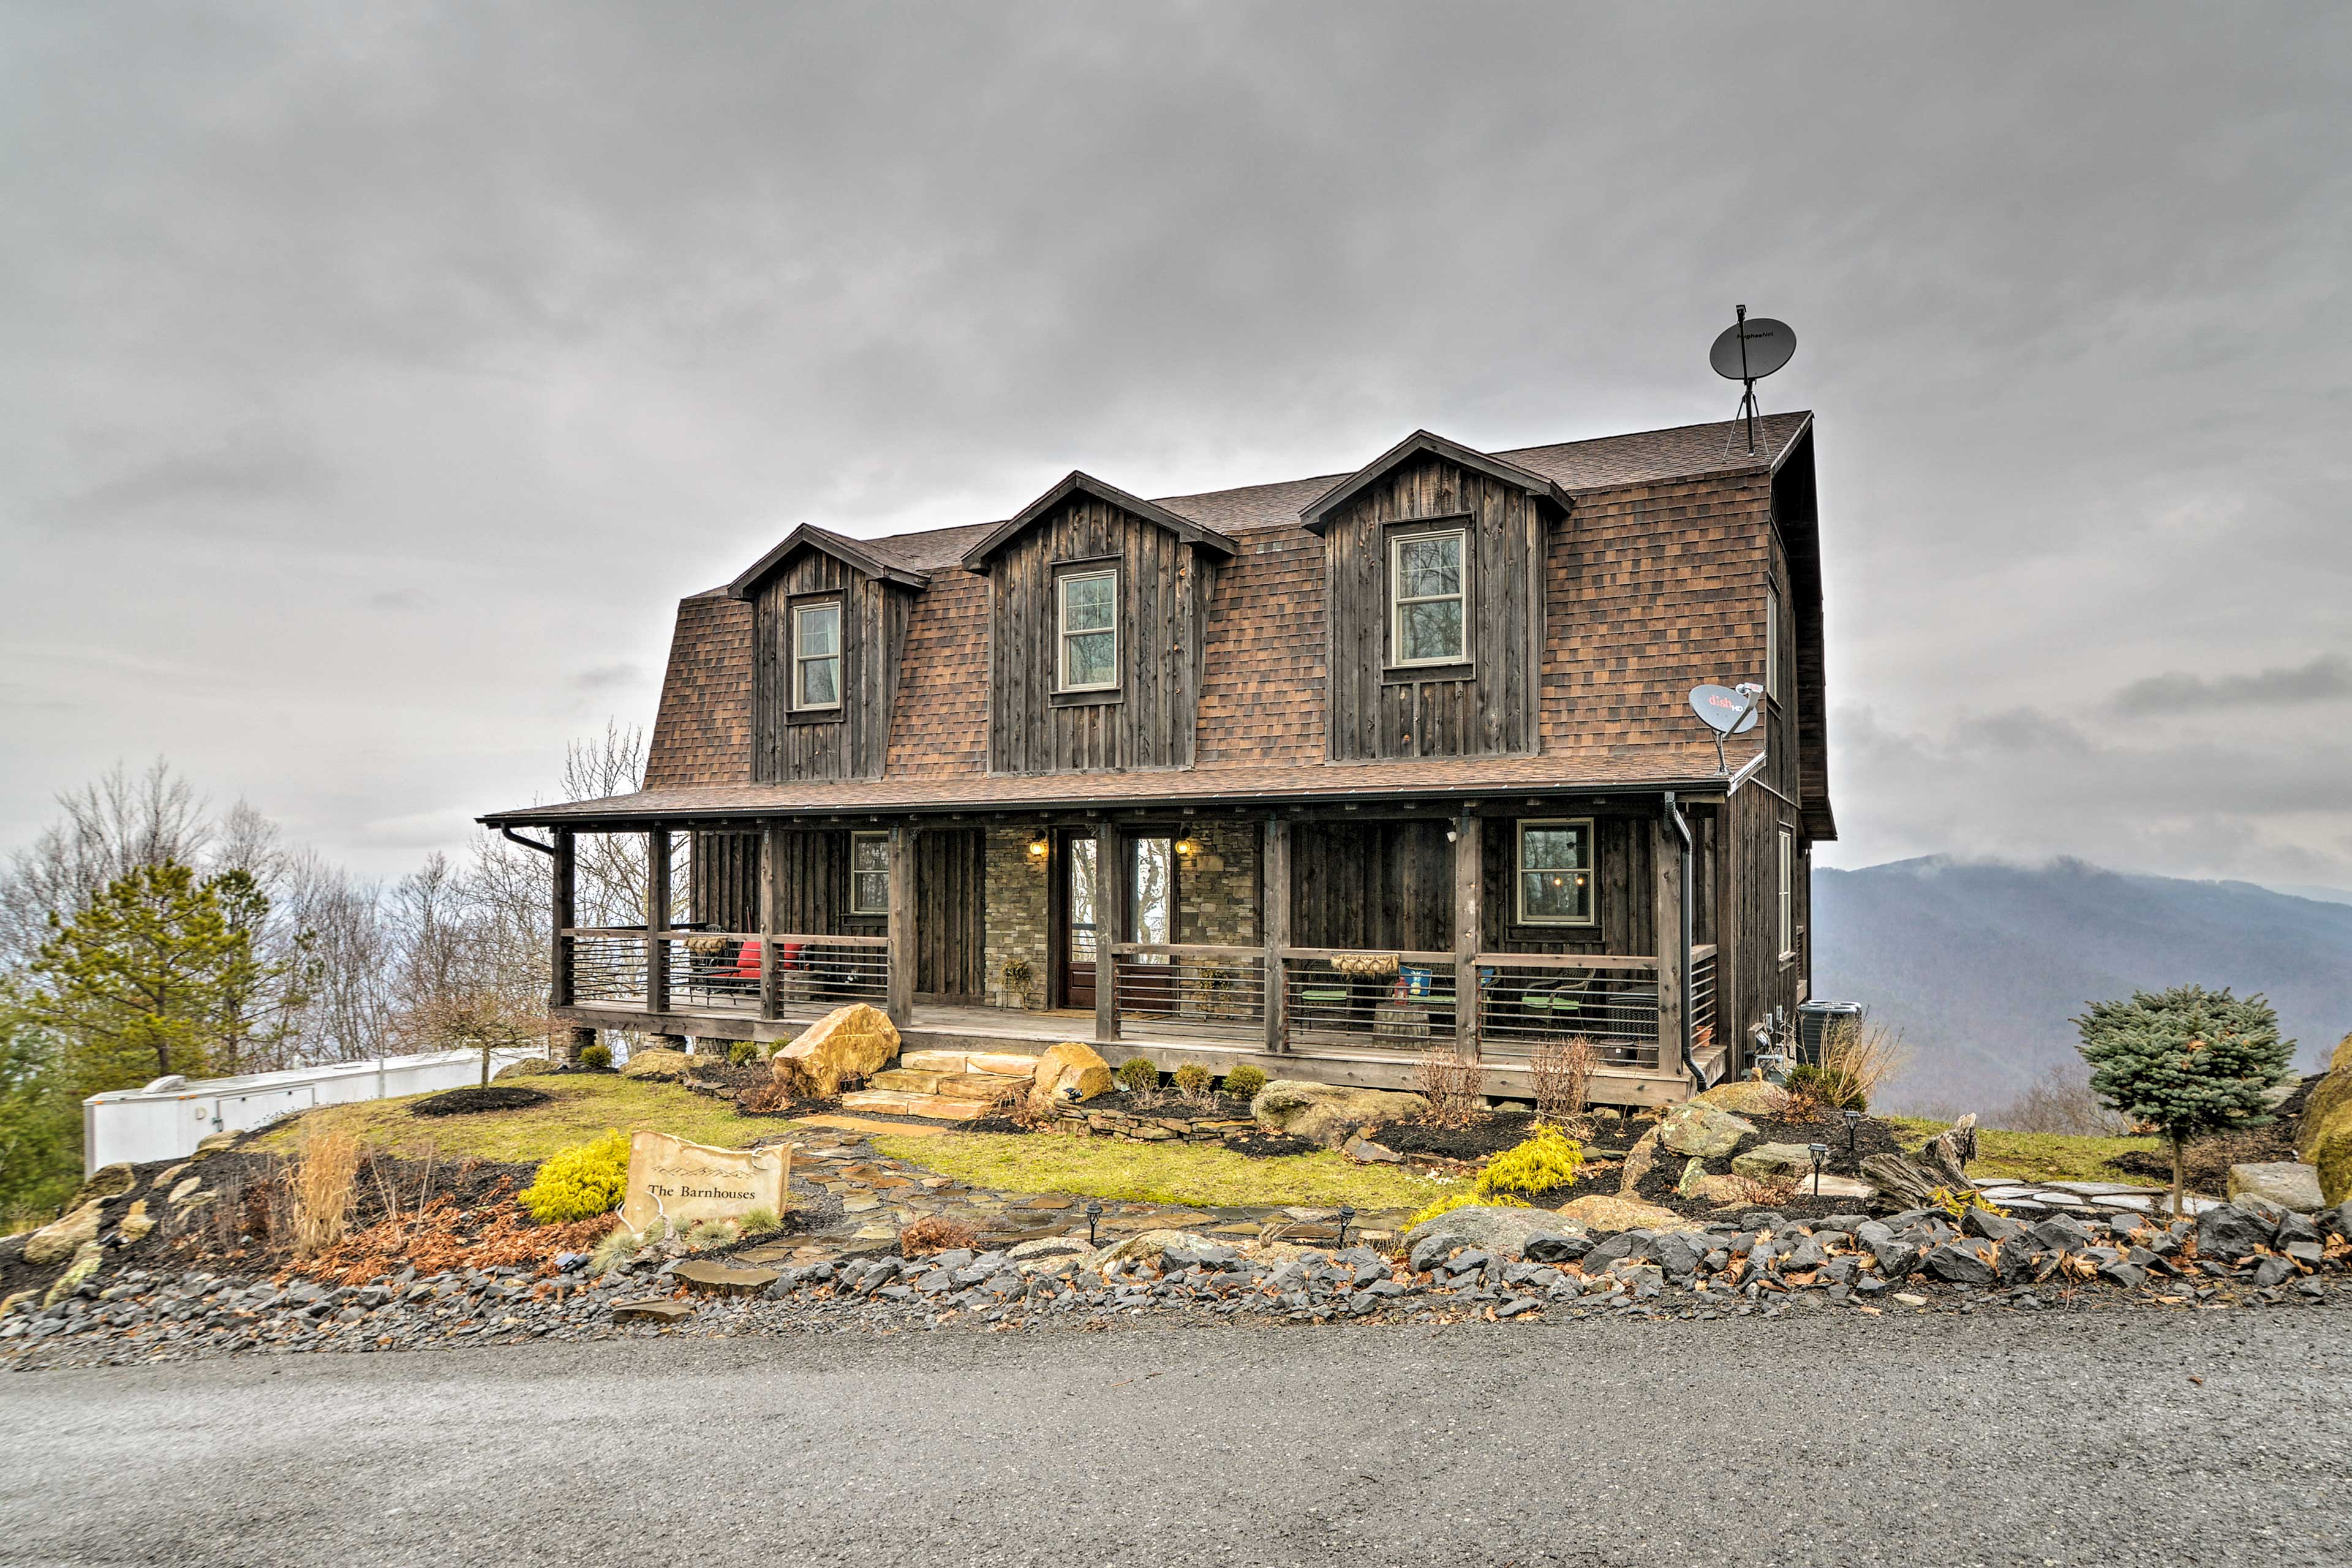 Immerse yourself in West Virginia's natural beauty when you stay at this home!